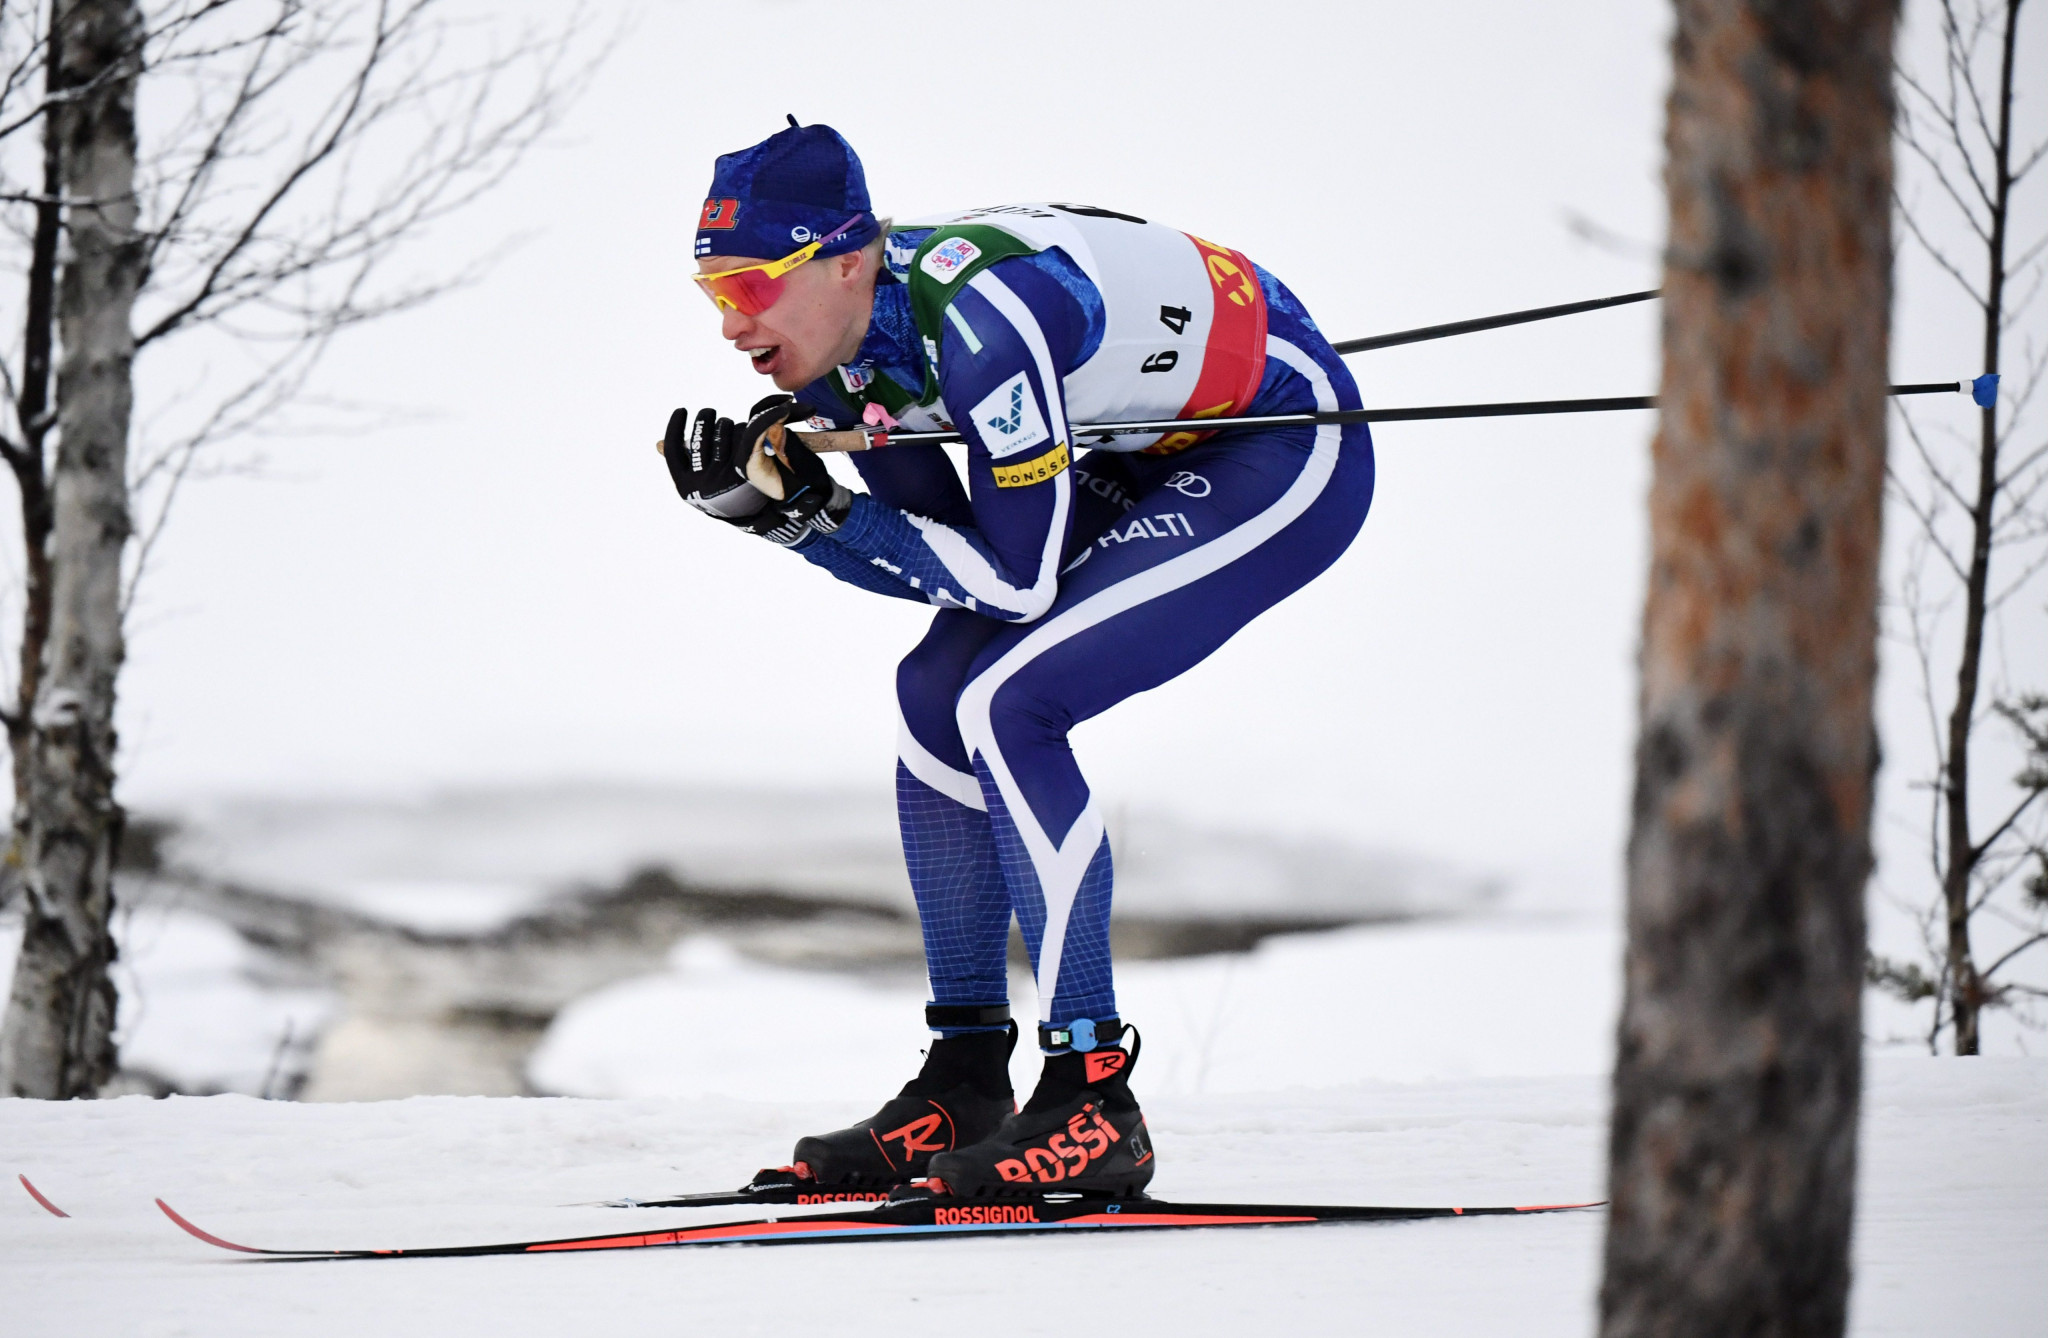 Finland's Iivo Niskanen will look for his second win in a row tomorrow when the latest FIS Cross Country World Cup starts in Ulricehamn ©Getty Images